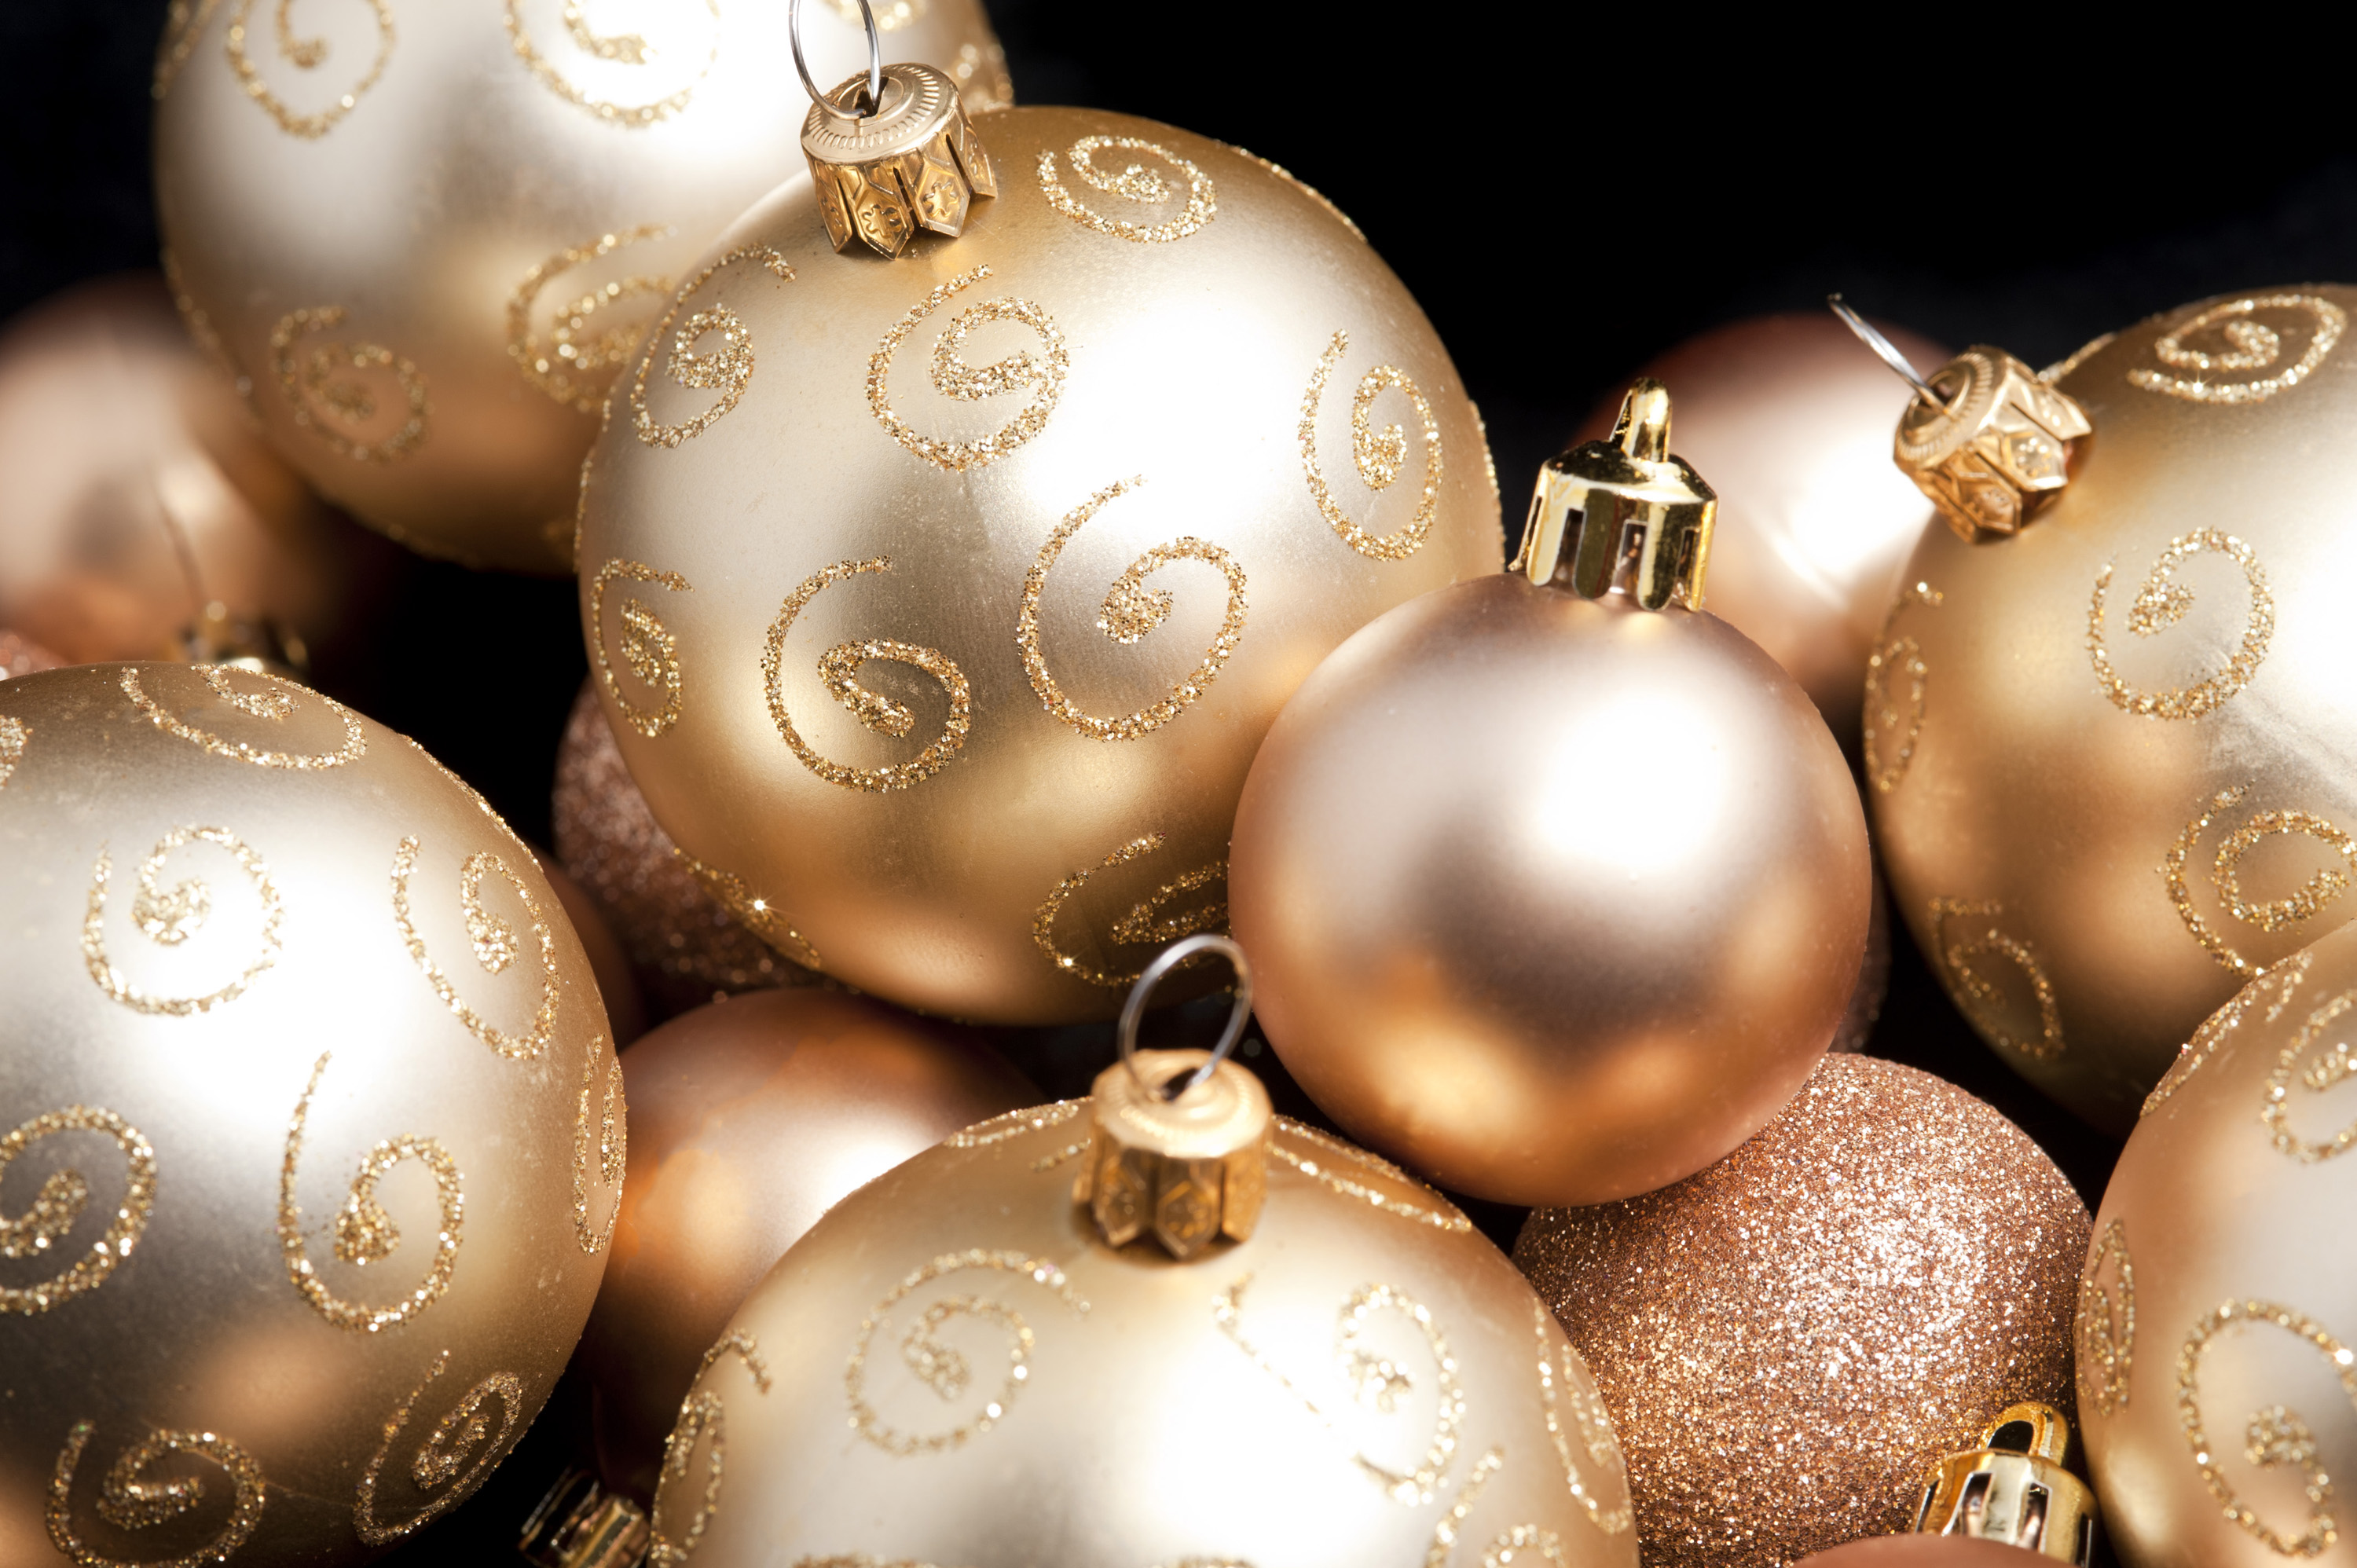 Festive background with random golden Christmas balls of different sizes, textures and patterns on a dark background